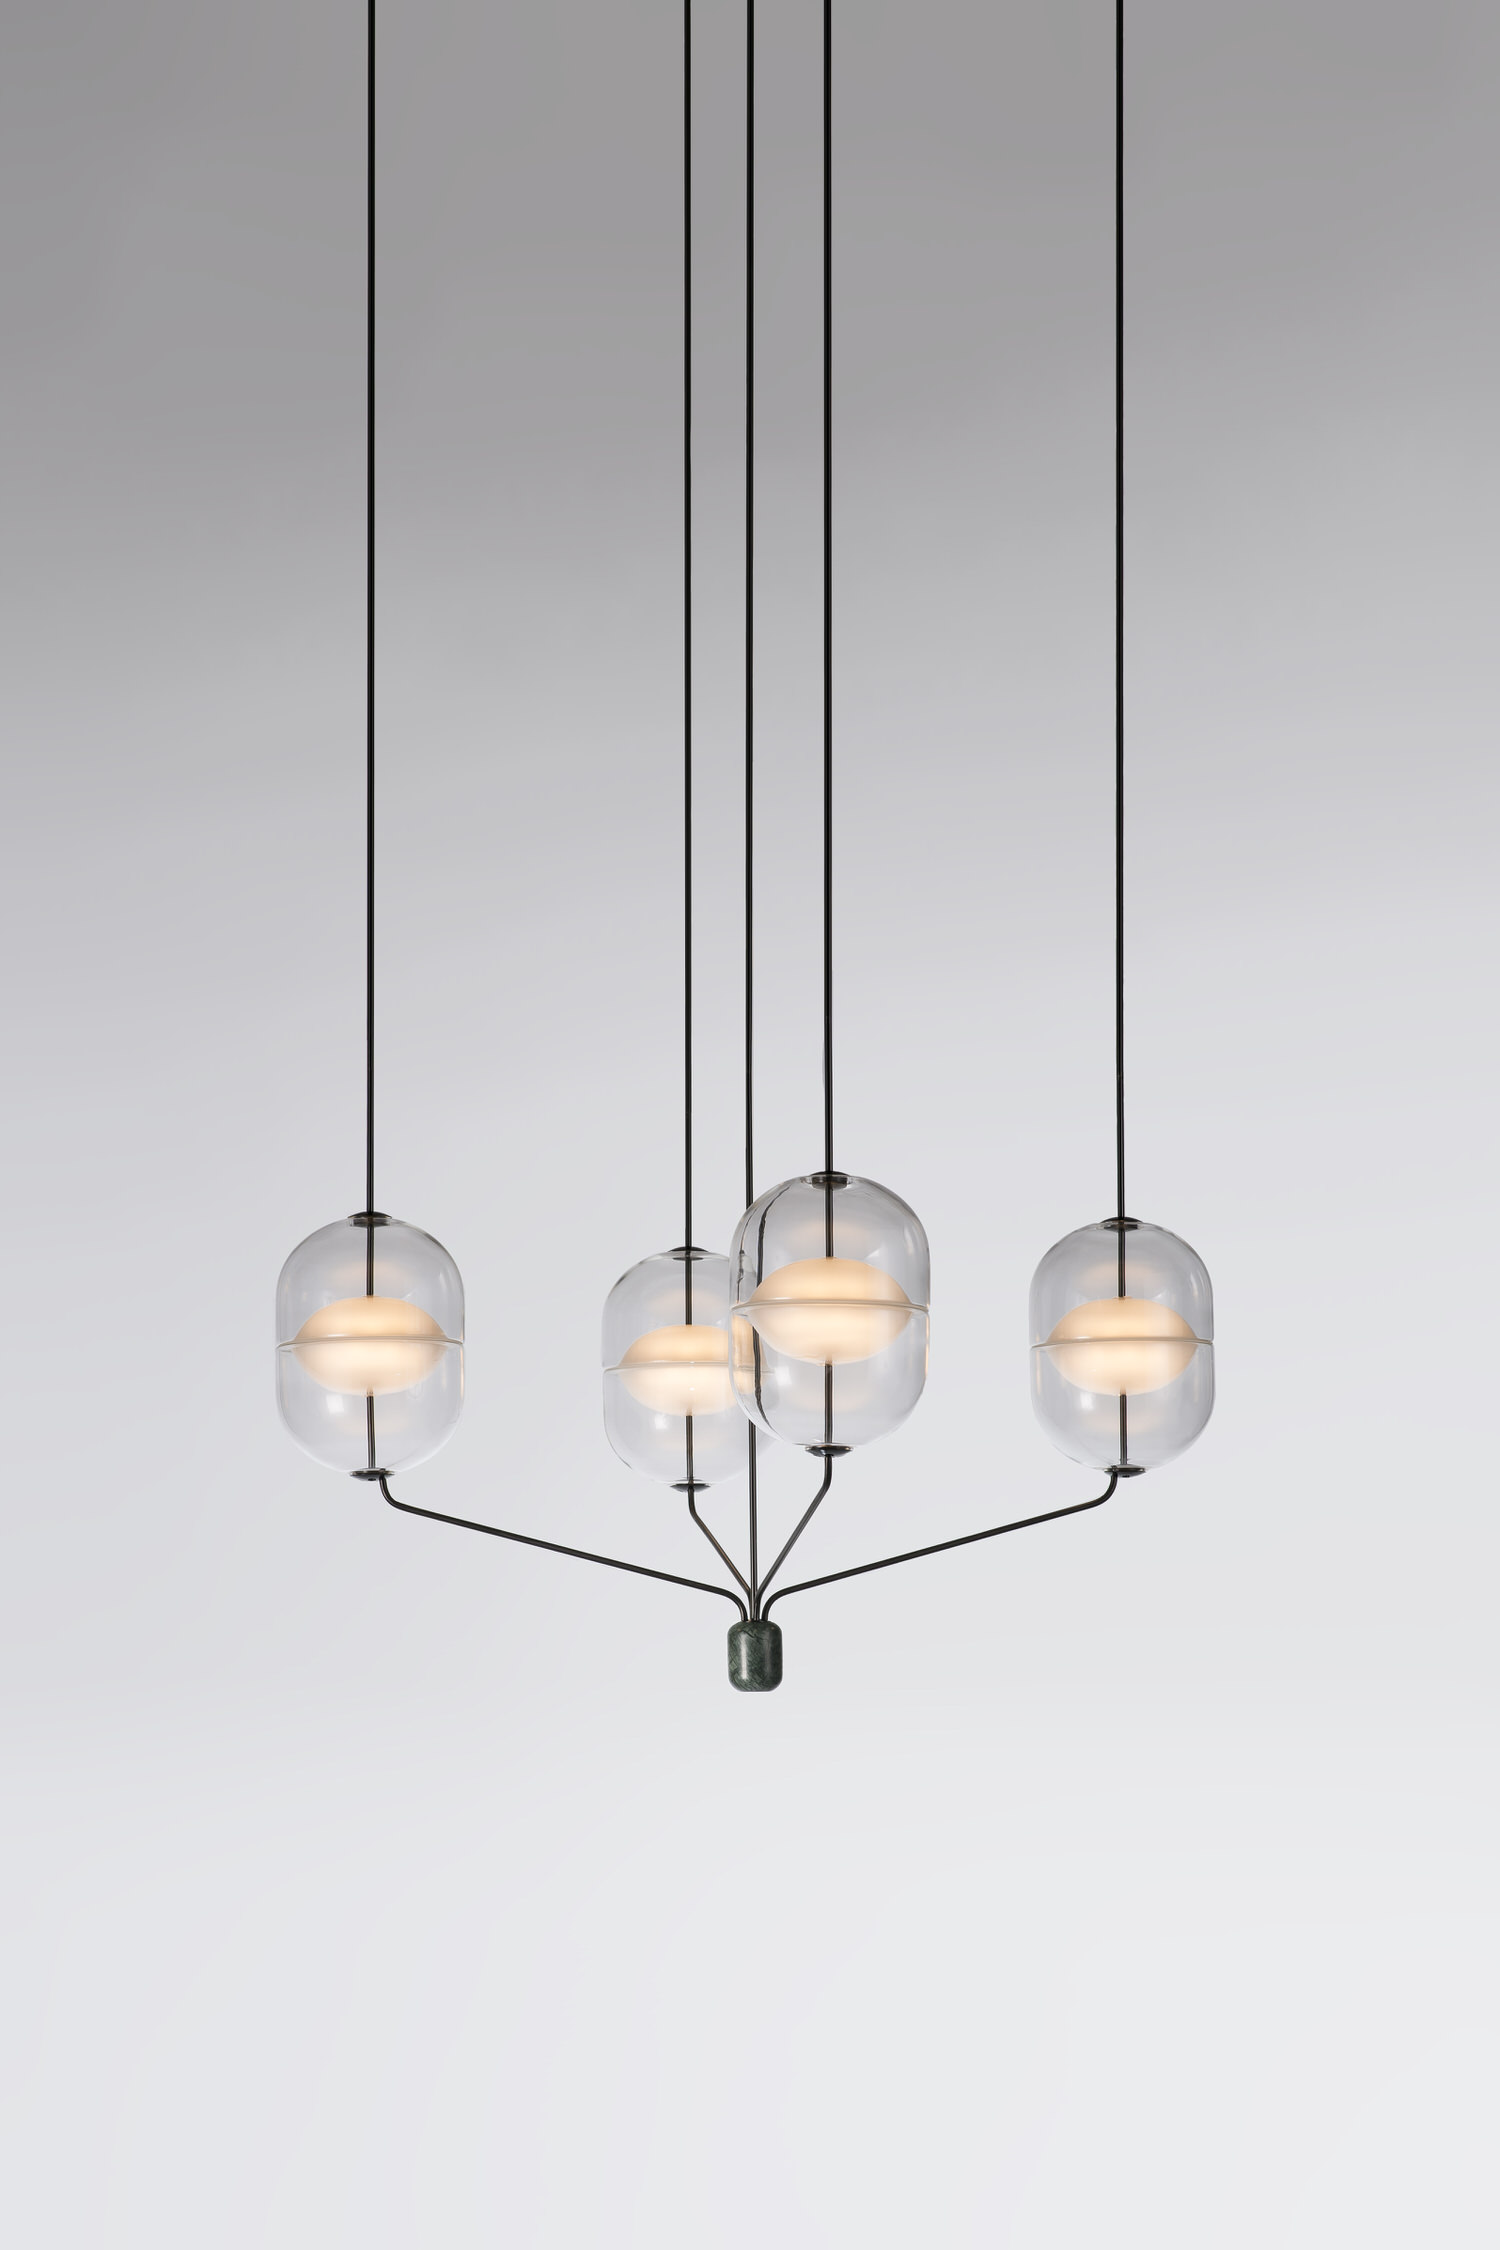 Indre Lighting Collection by Nikolai Kotlarczyk for Rakumba, Lighting Design | Yellowtrace